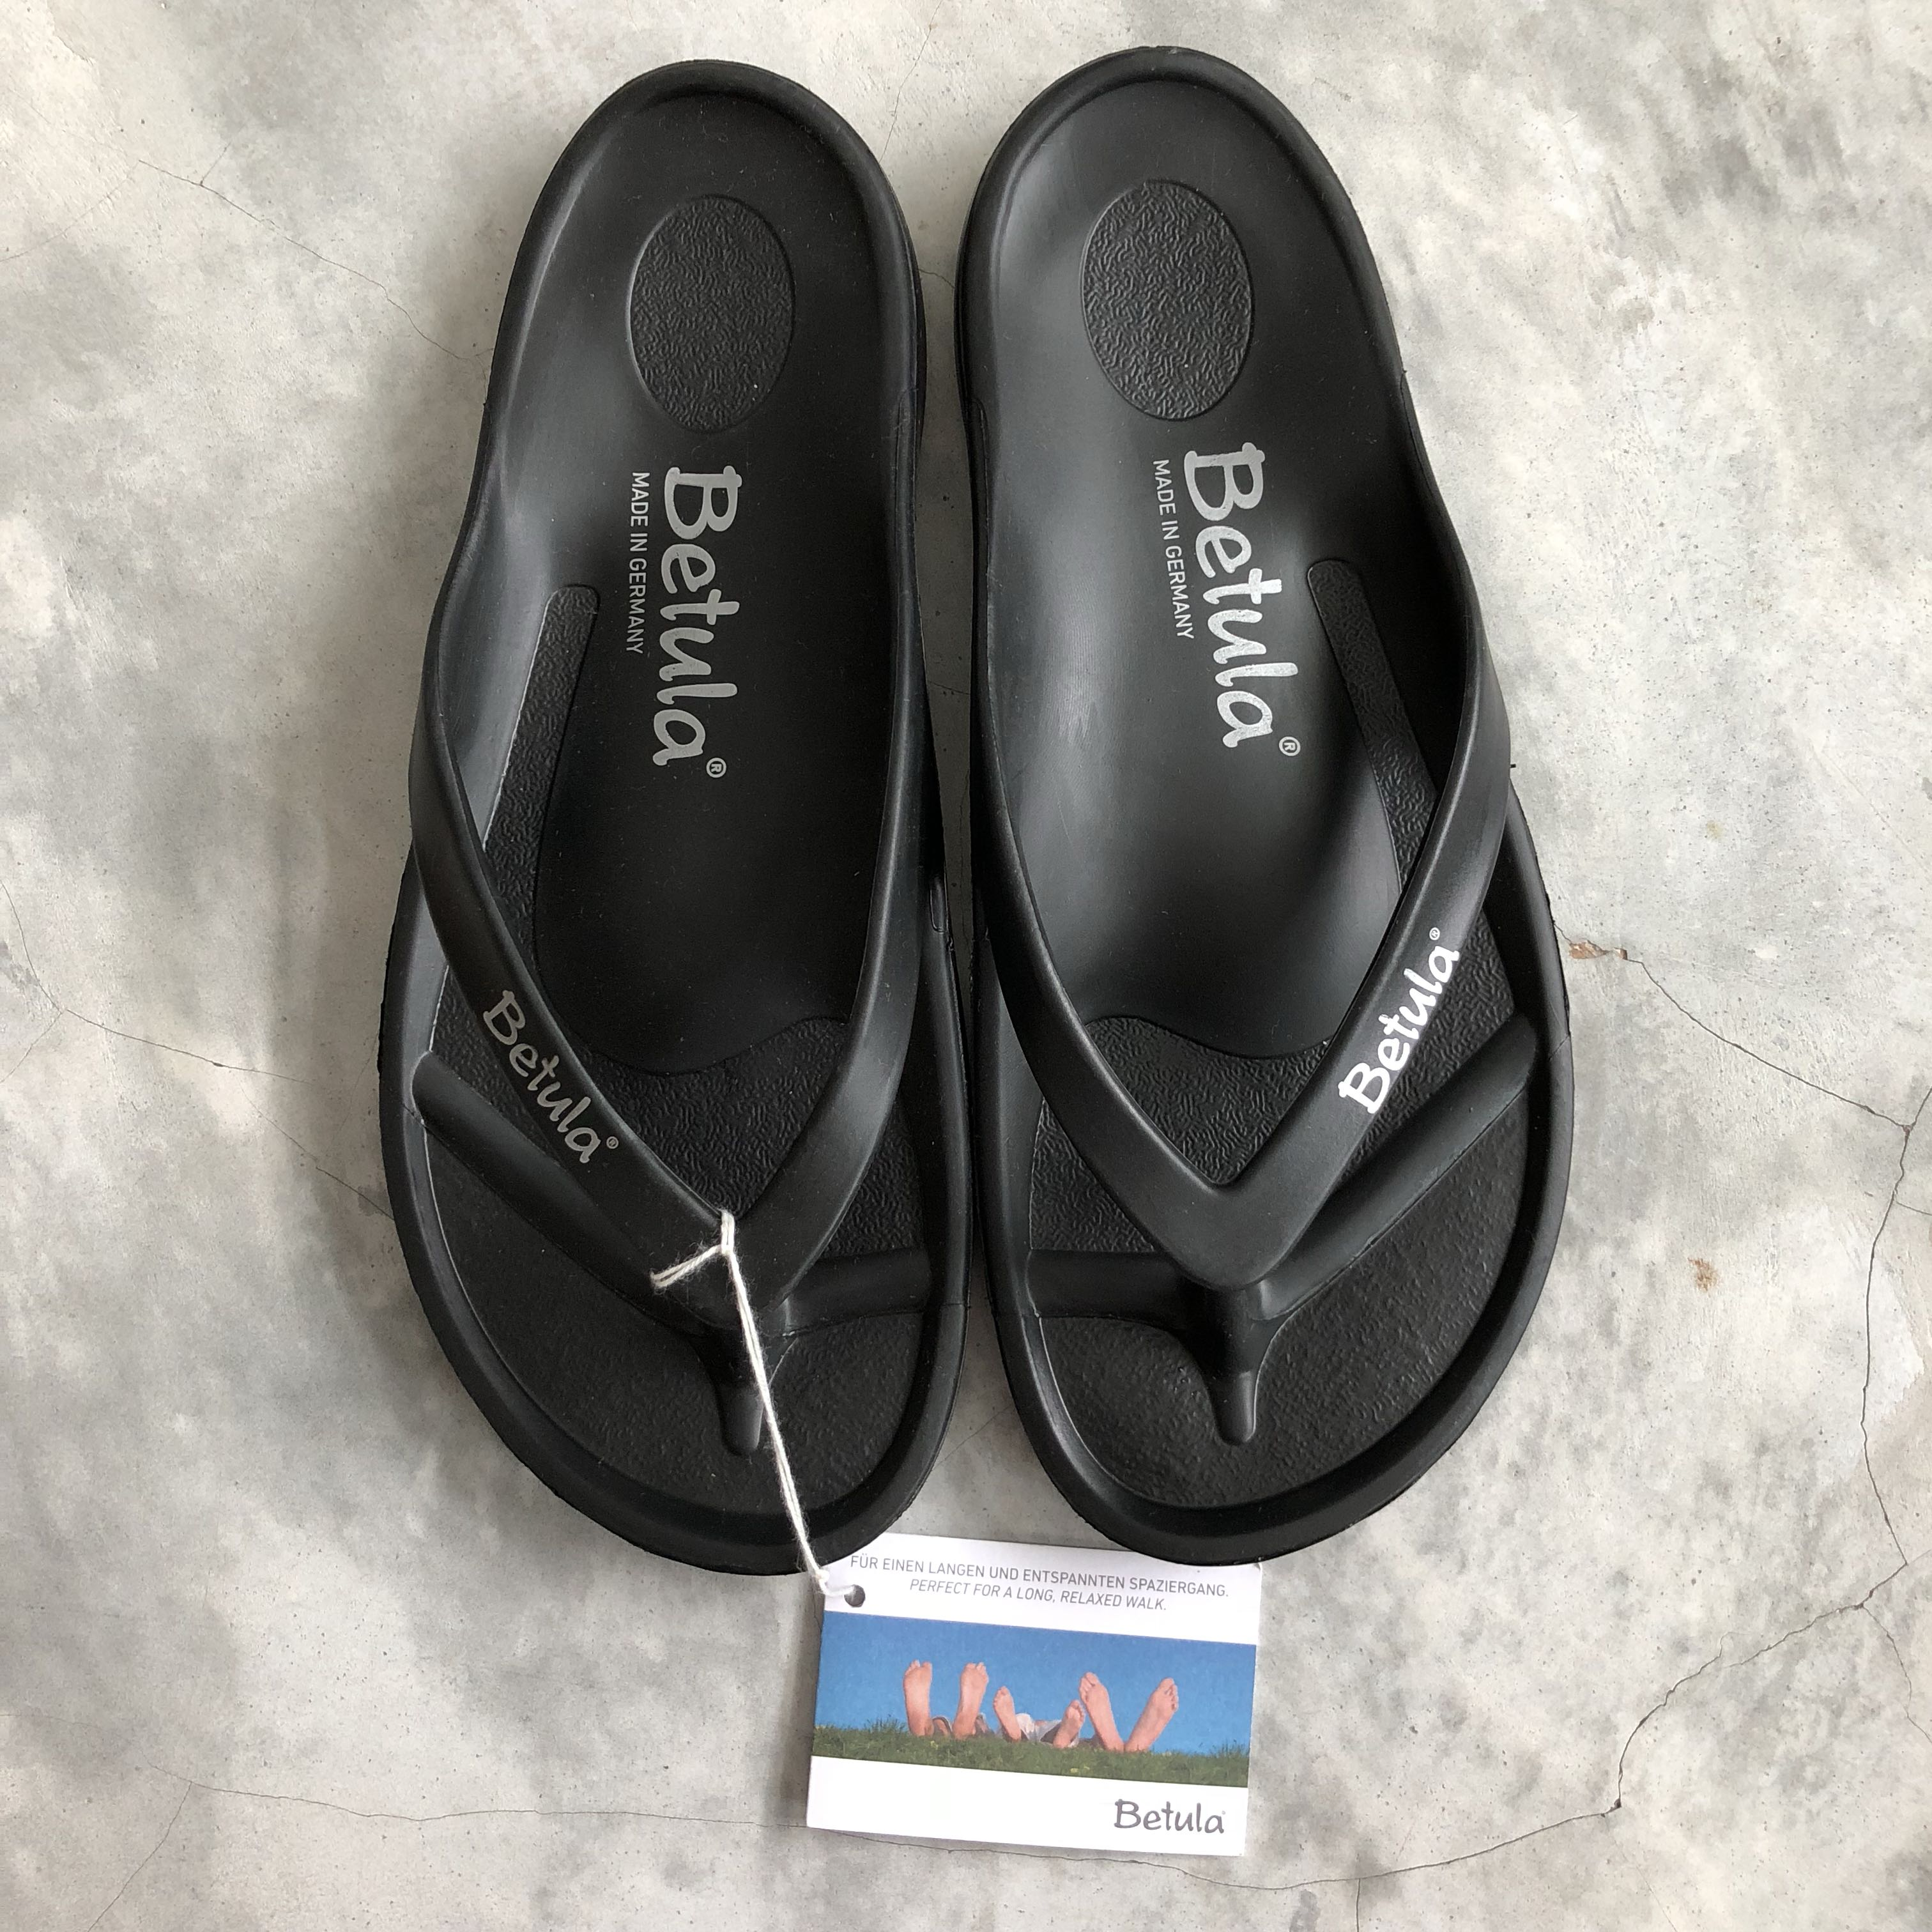 bf9bf4d55dd2 [New] Birkenstock Betula Slippers EU40, Women's Fashion, Shoes, Flats &  Sandals on Carousell